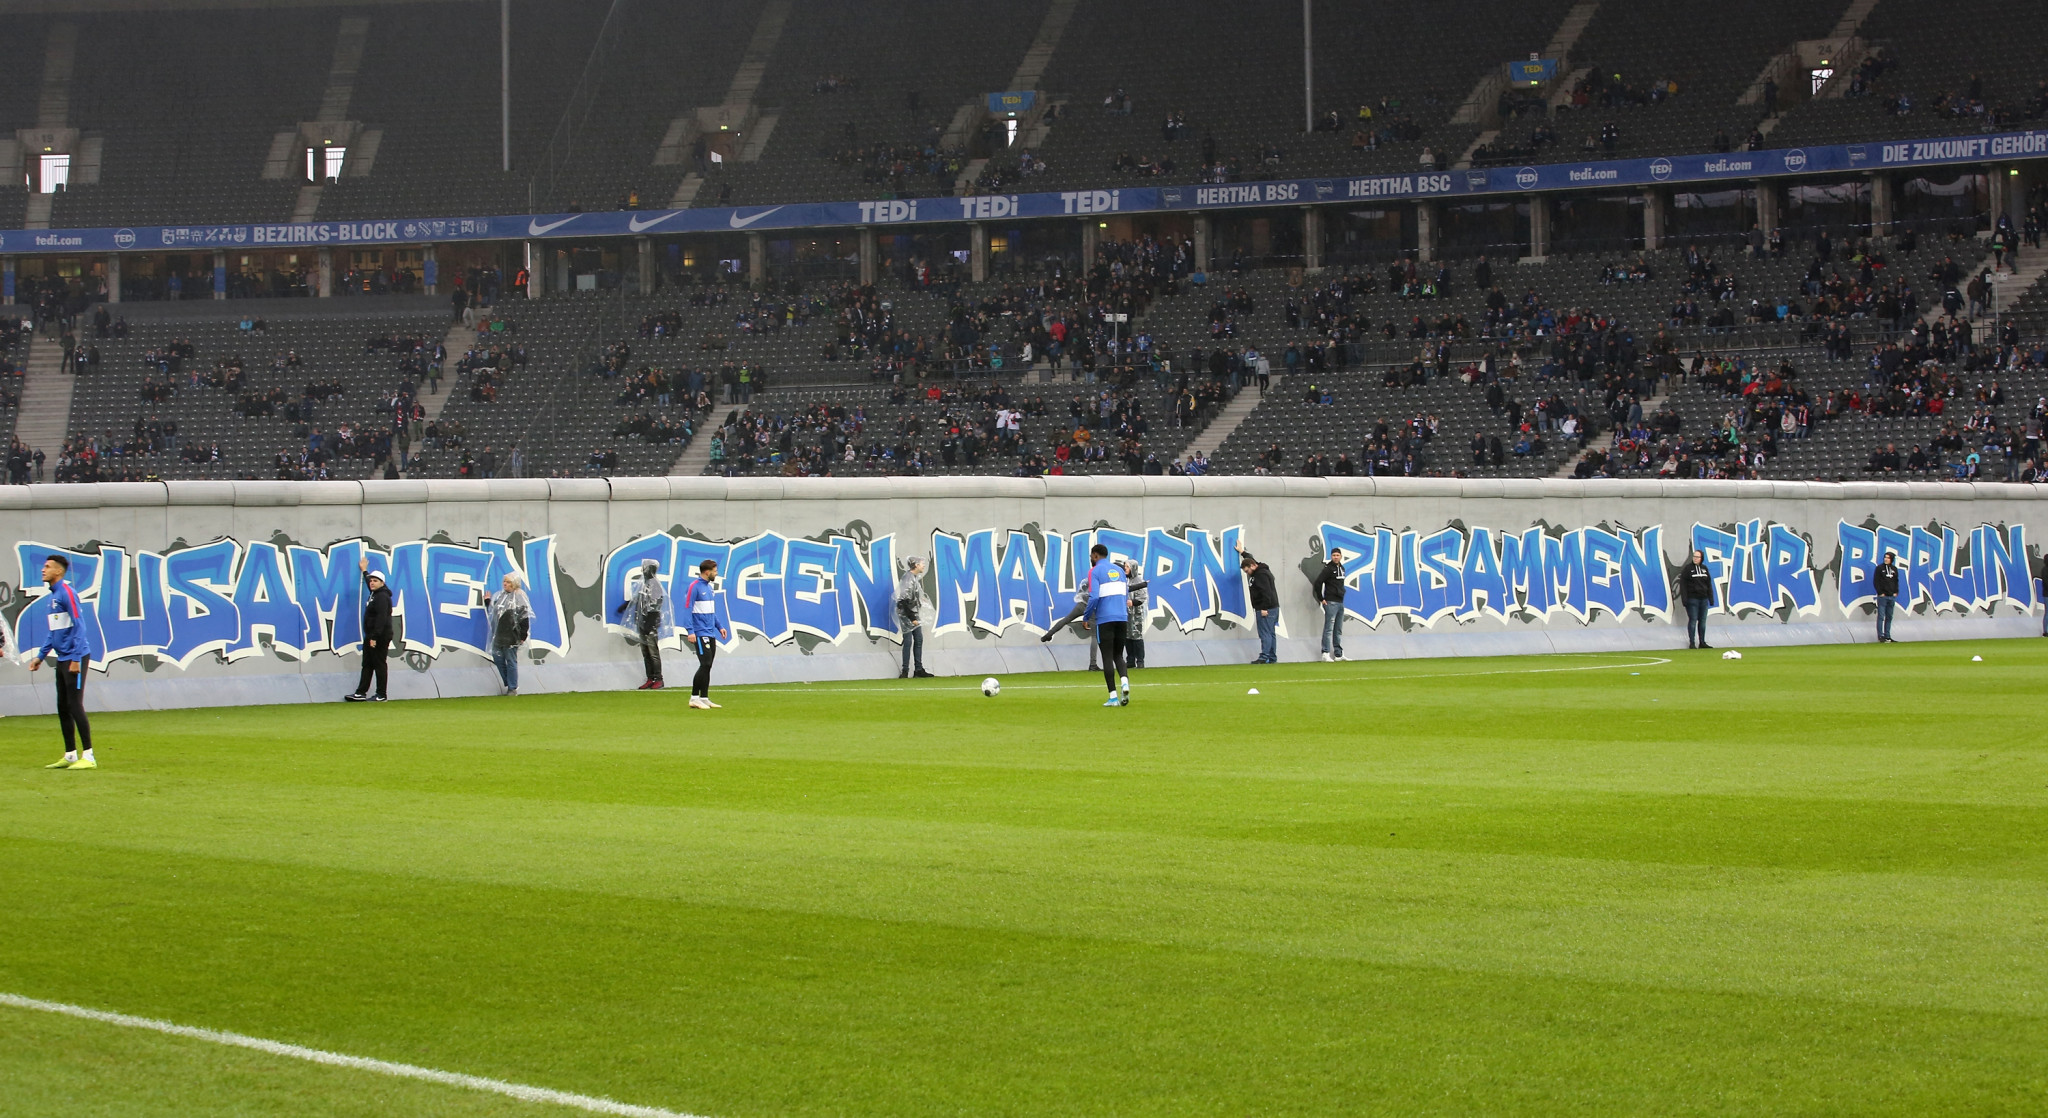 Hertha Berlin erected a symbolic wall during their Bundesliga match last Saturday against Leipzig to mark the 30th anniversary of the Berlin Wall being torn down ©Getty Images